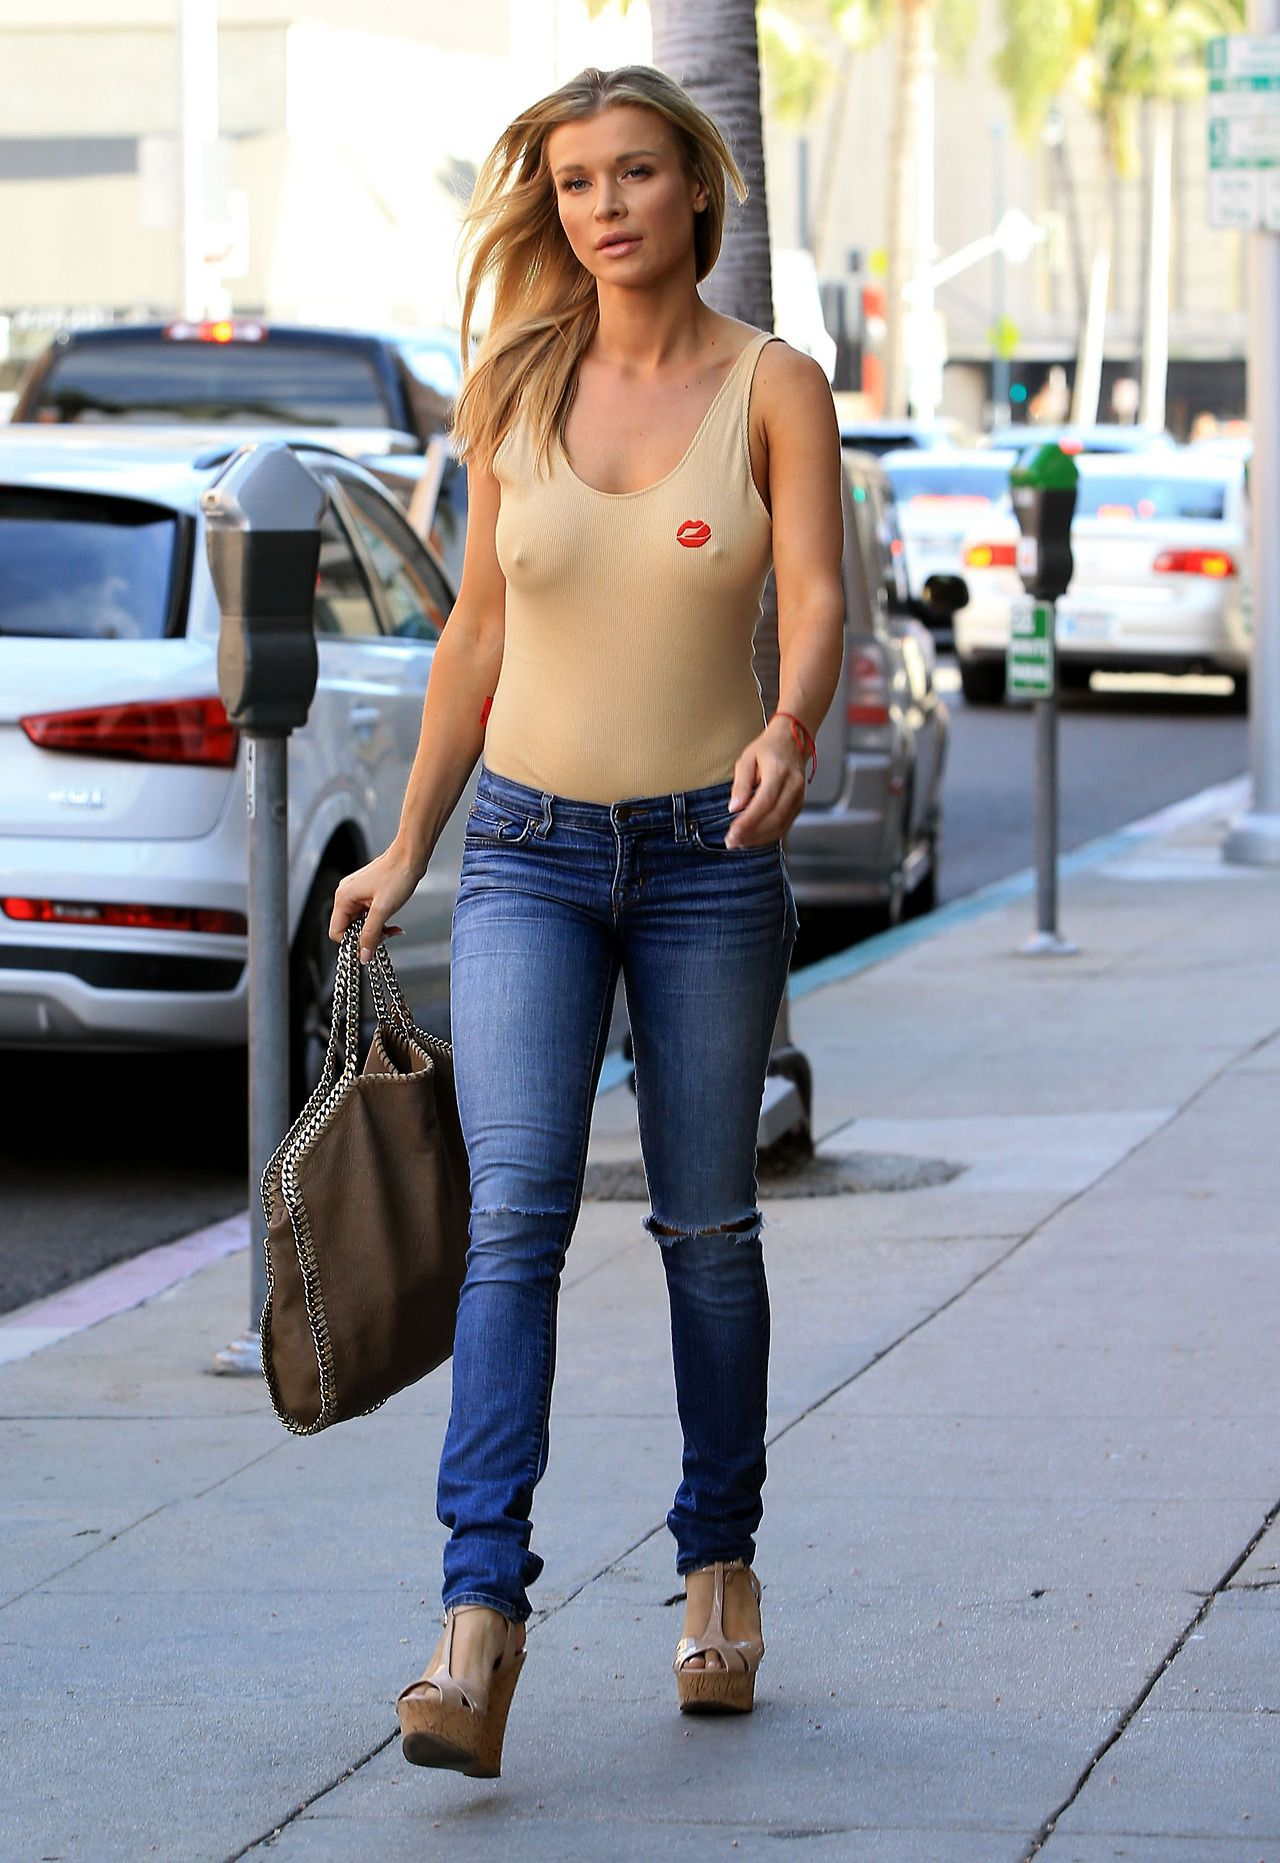 Pokies of joanna krupa - 2019 year